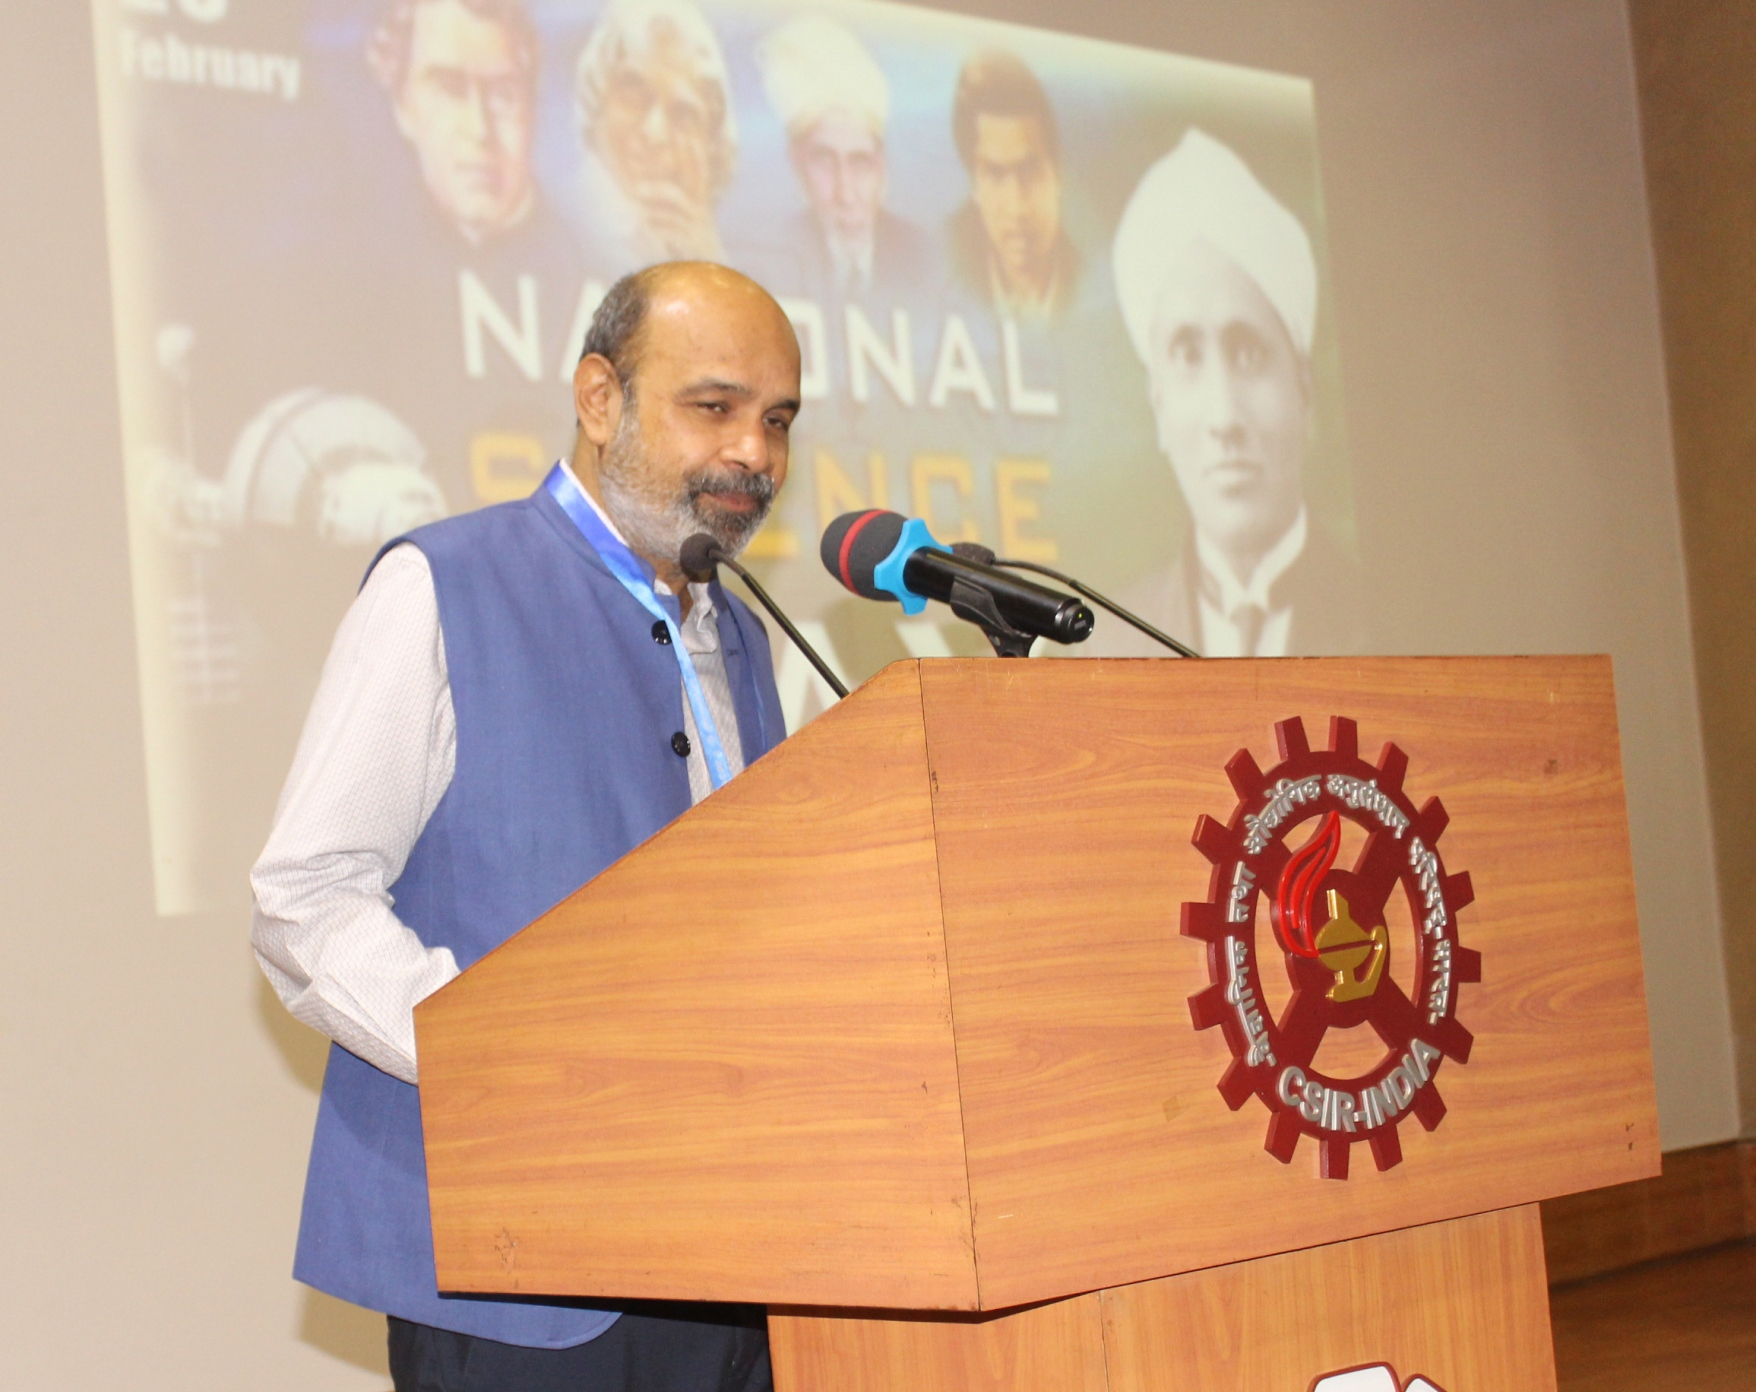 Welcome address by Dr. K. Muraleedharan, Director,CSIR-CGCRI